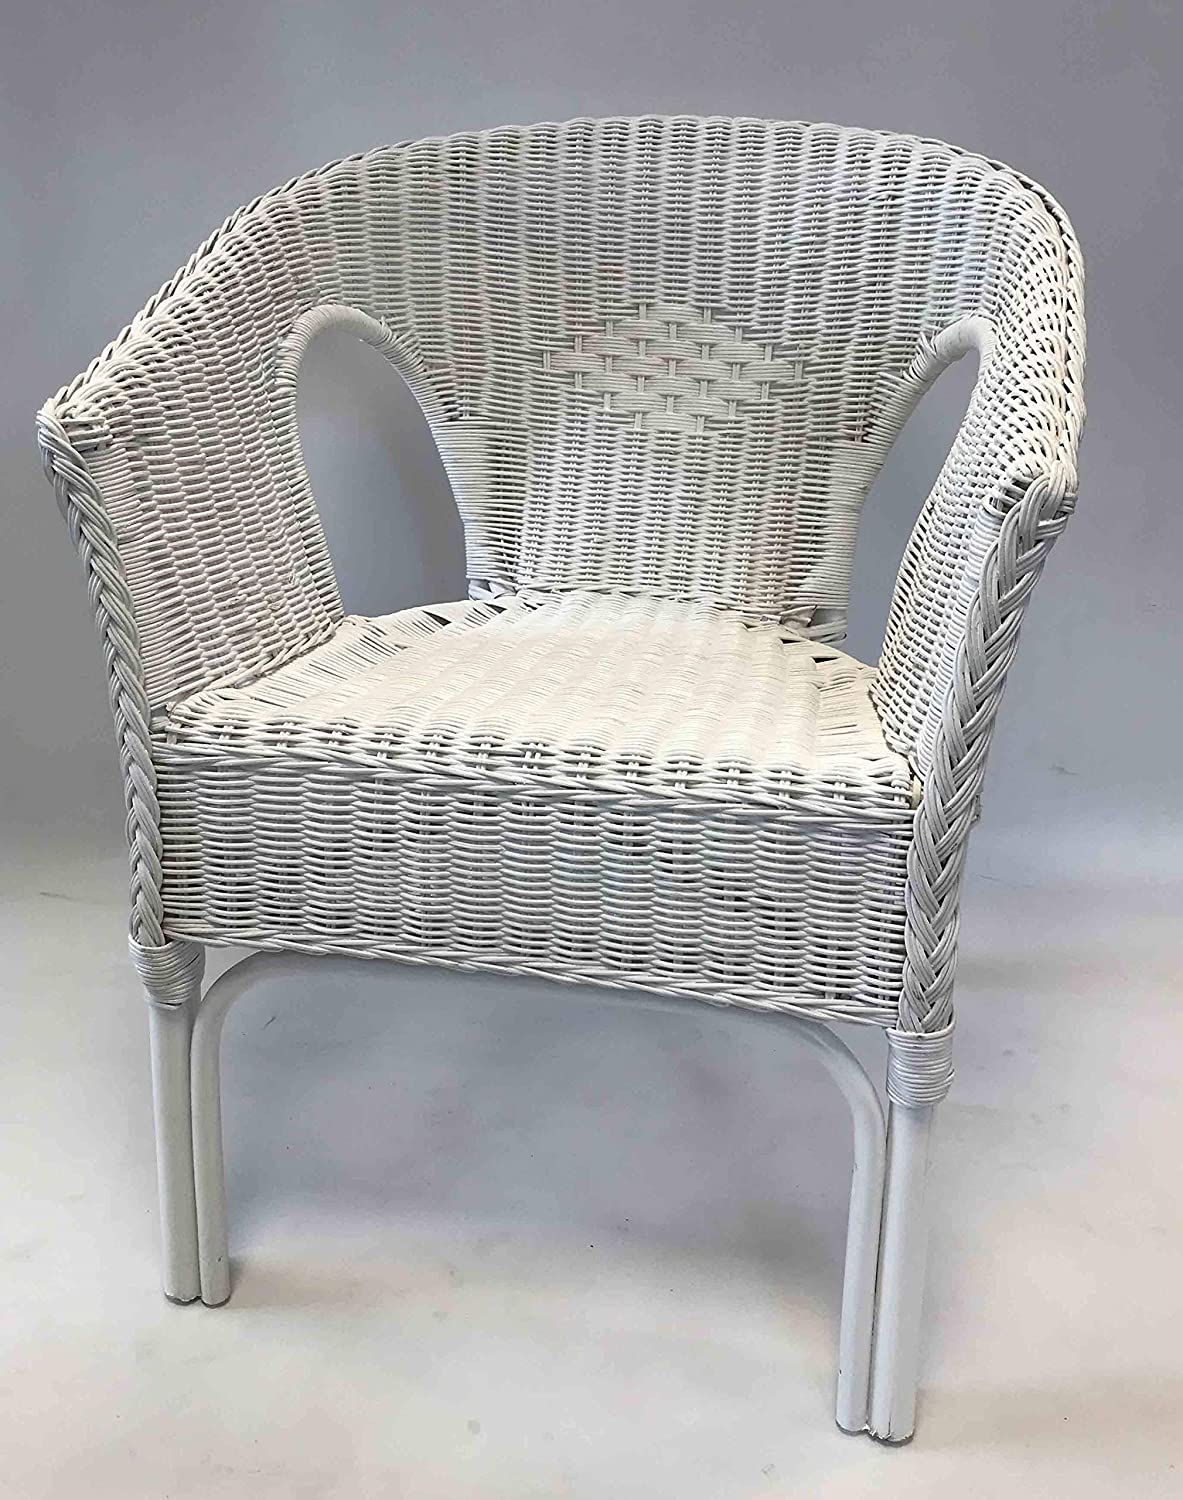 Home-Ever Rattan Armchair For Conservatory, Bedroom, Nursery (White)